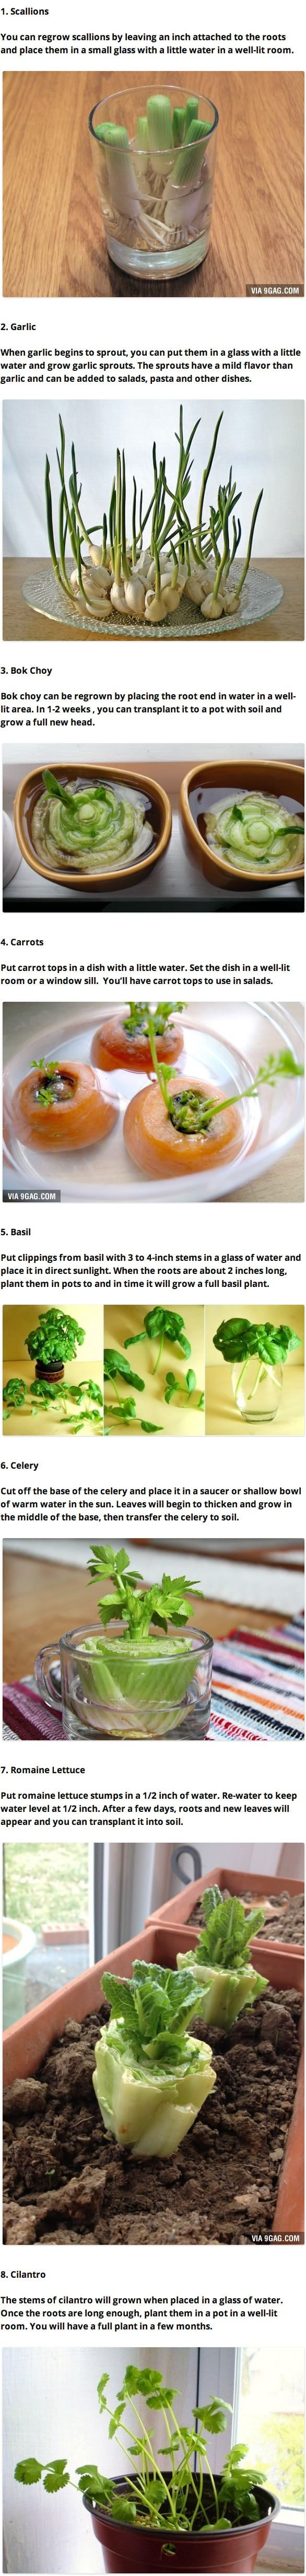 8 Vegetables That You Can Regrow Again And Again/8 vegetales que puedes plantar en casa una y otra vez